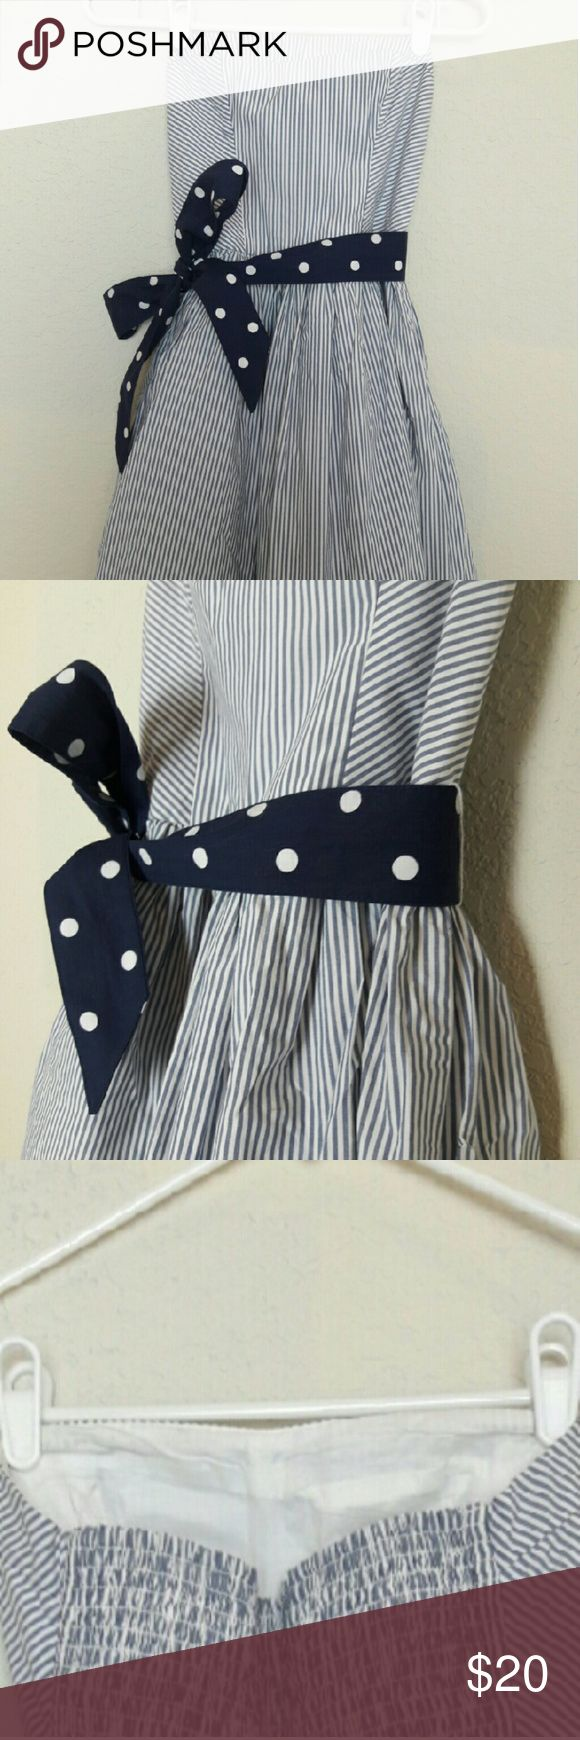 Hollister Strapless Nautical Cocktail Dress ADORABLE! Never worn dress! Suttle sweetheart neckline and ballgown like bottom. Sits about mid thigh. Polka dot waistband helps accentuate the waist! Very slight discoloration on inner bust line from sitting in closet (in third picture). Hollister Dresses Strapless